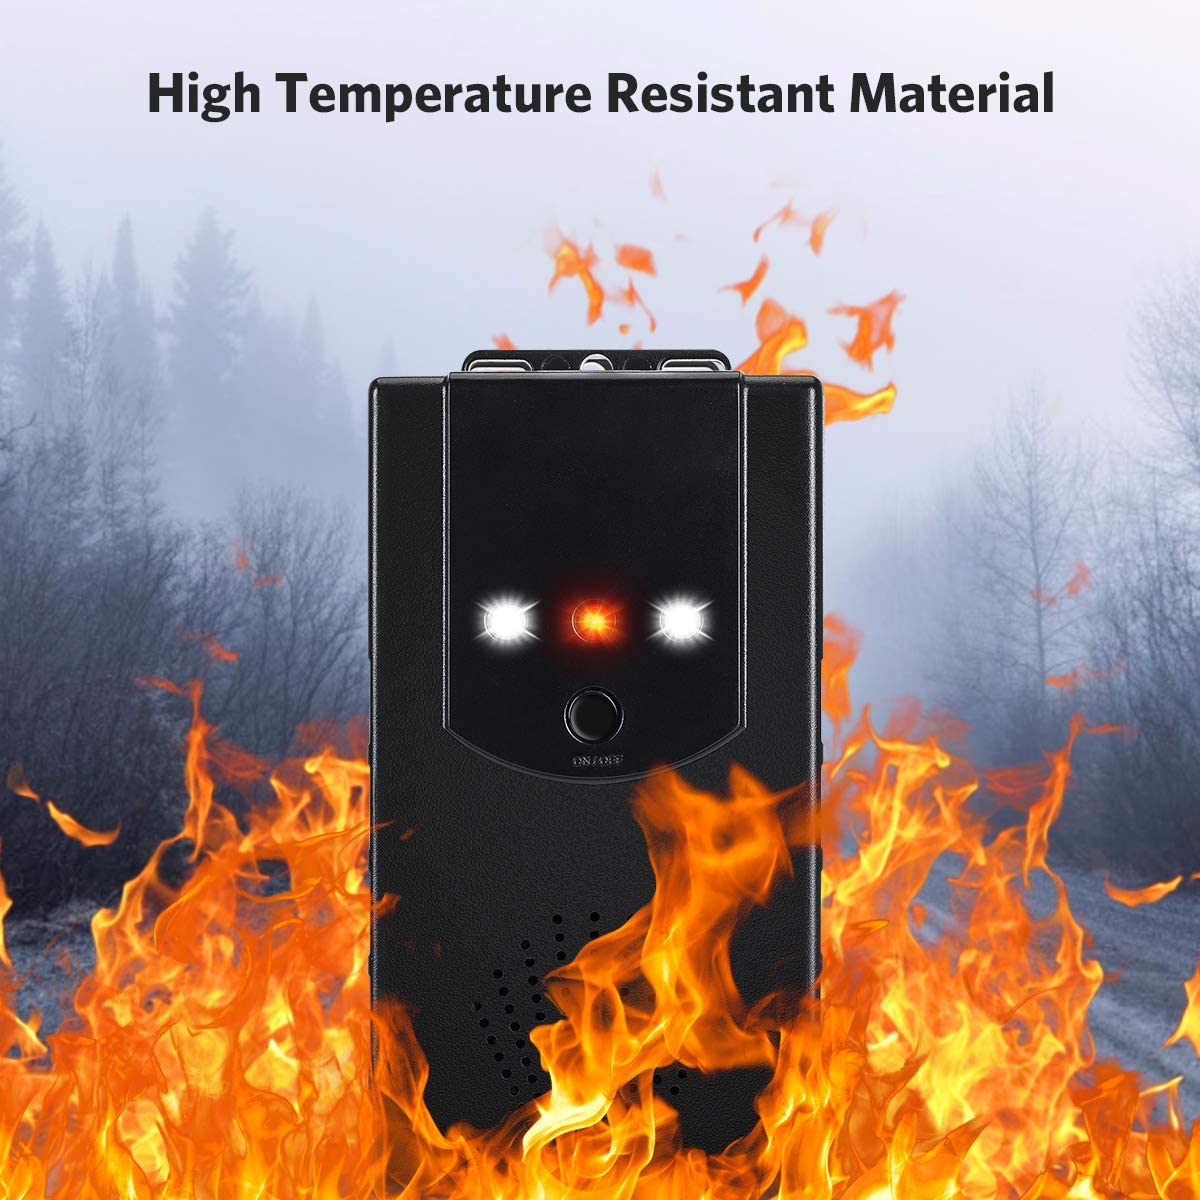 Anecity Marten Repellent Car Marten Protection Marten Repellent with Ultrasonic Change Frequency and LED Flash Light Function